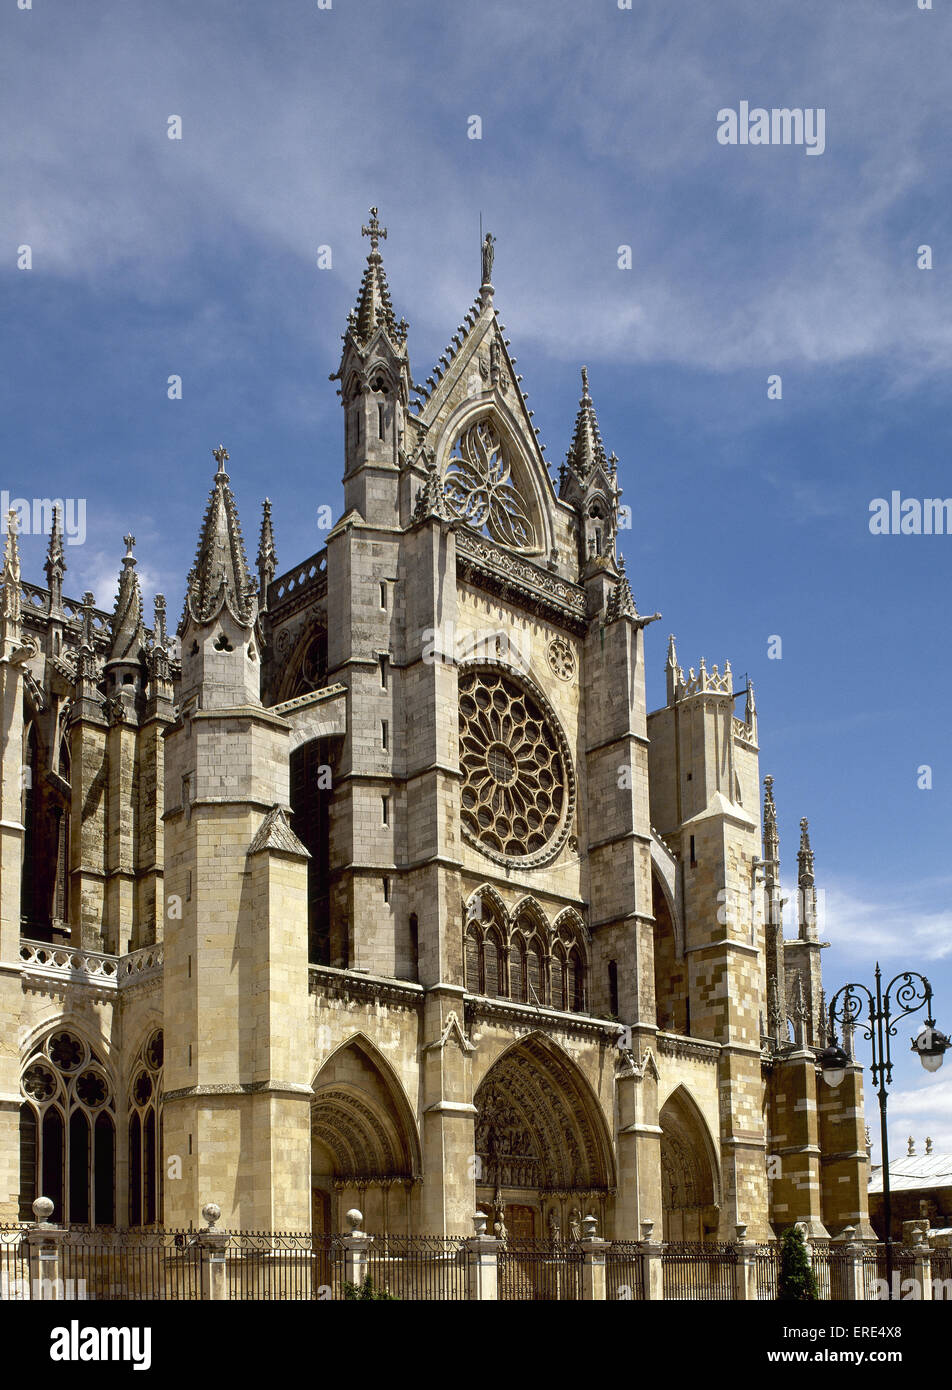 Spain. Leon. Gothic cathedral. 13th-14th centuries. Facade. - Stock Image